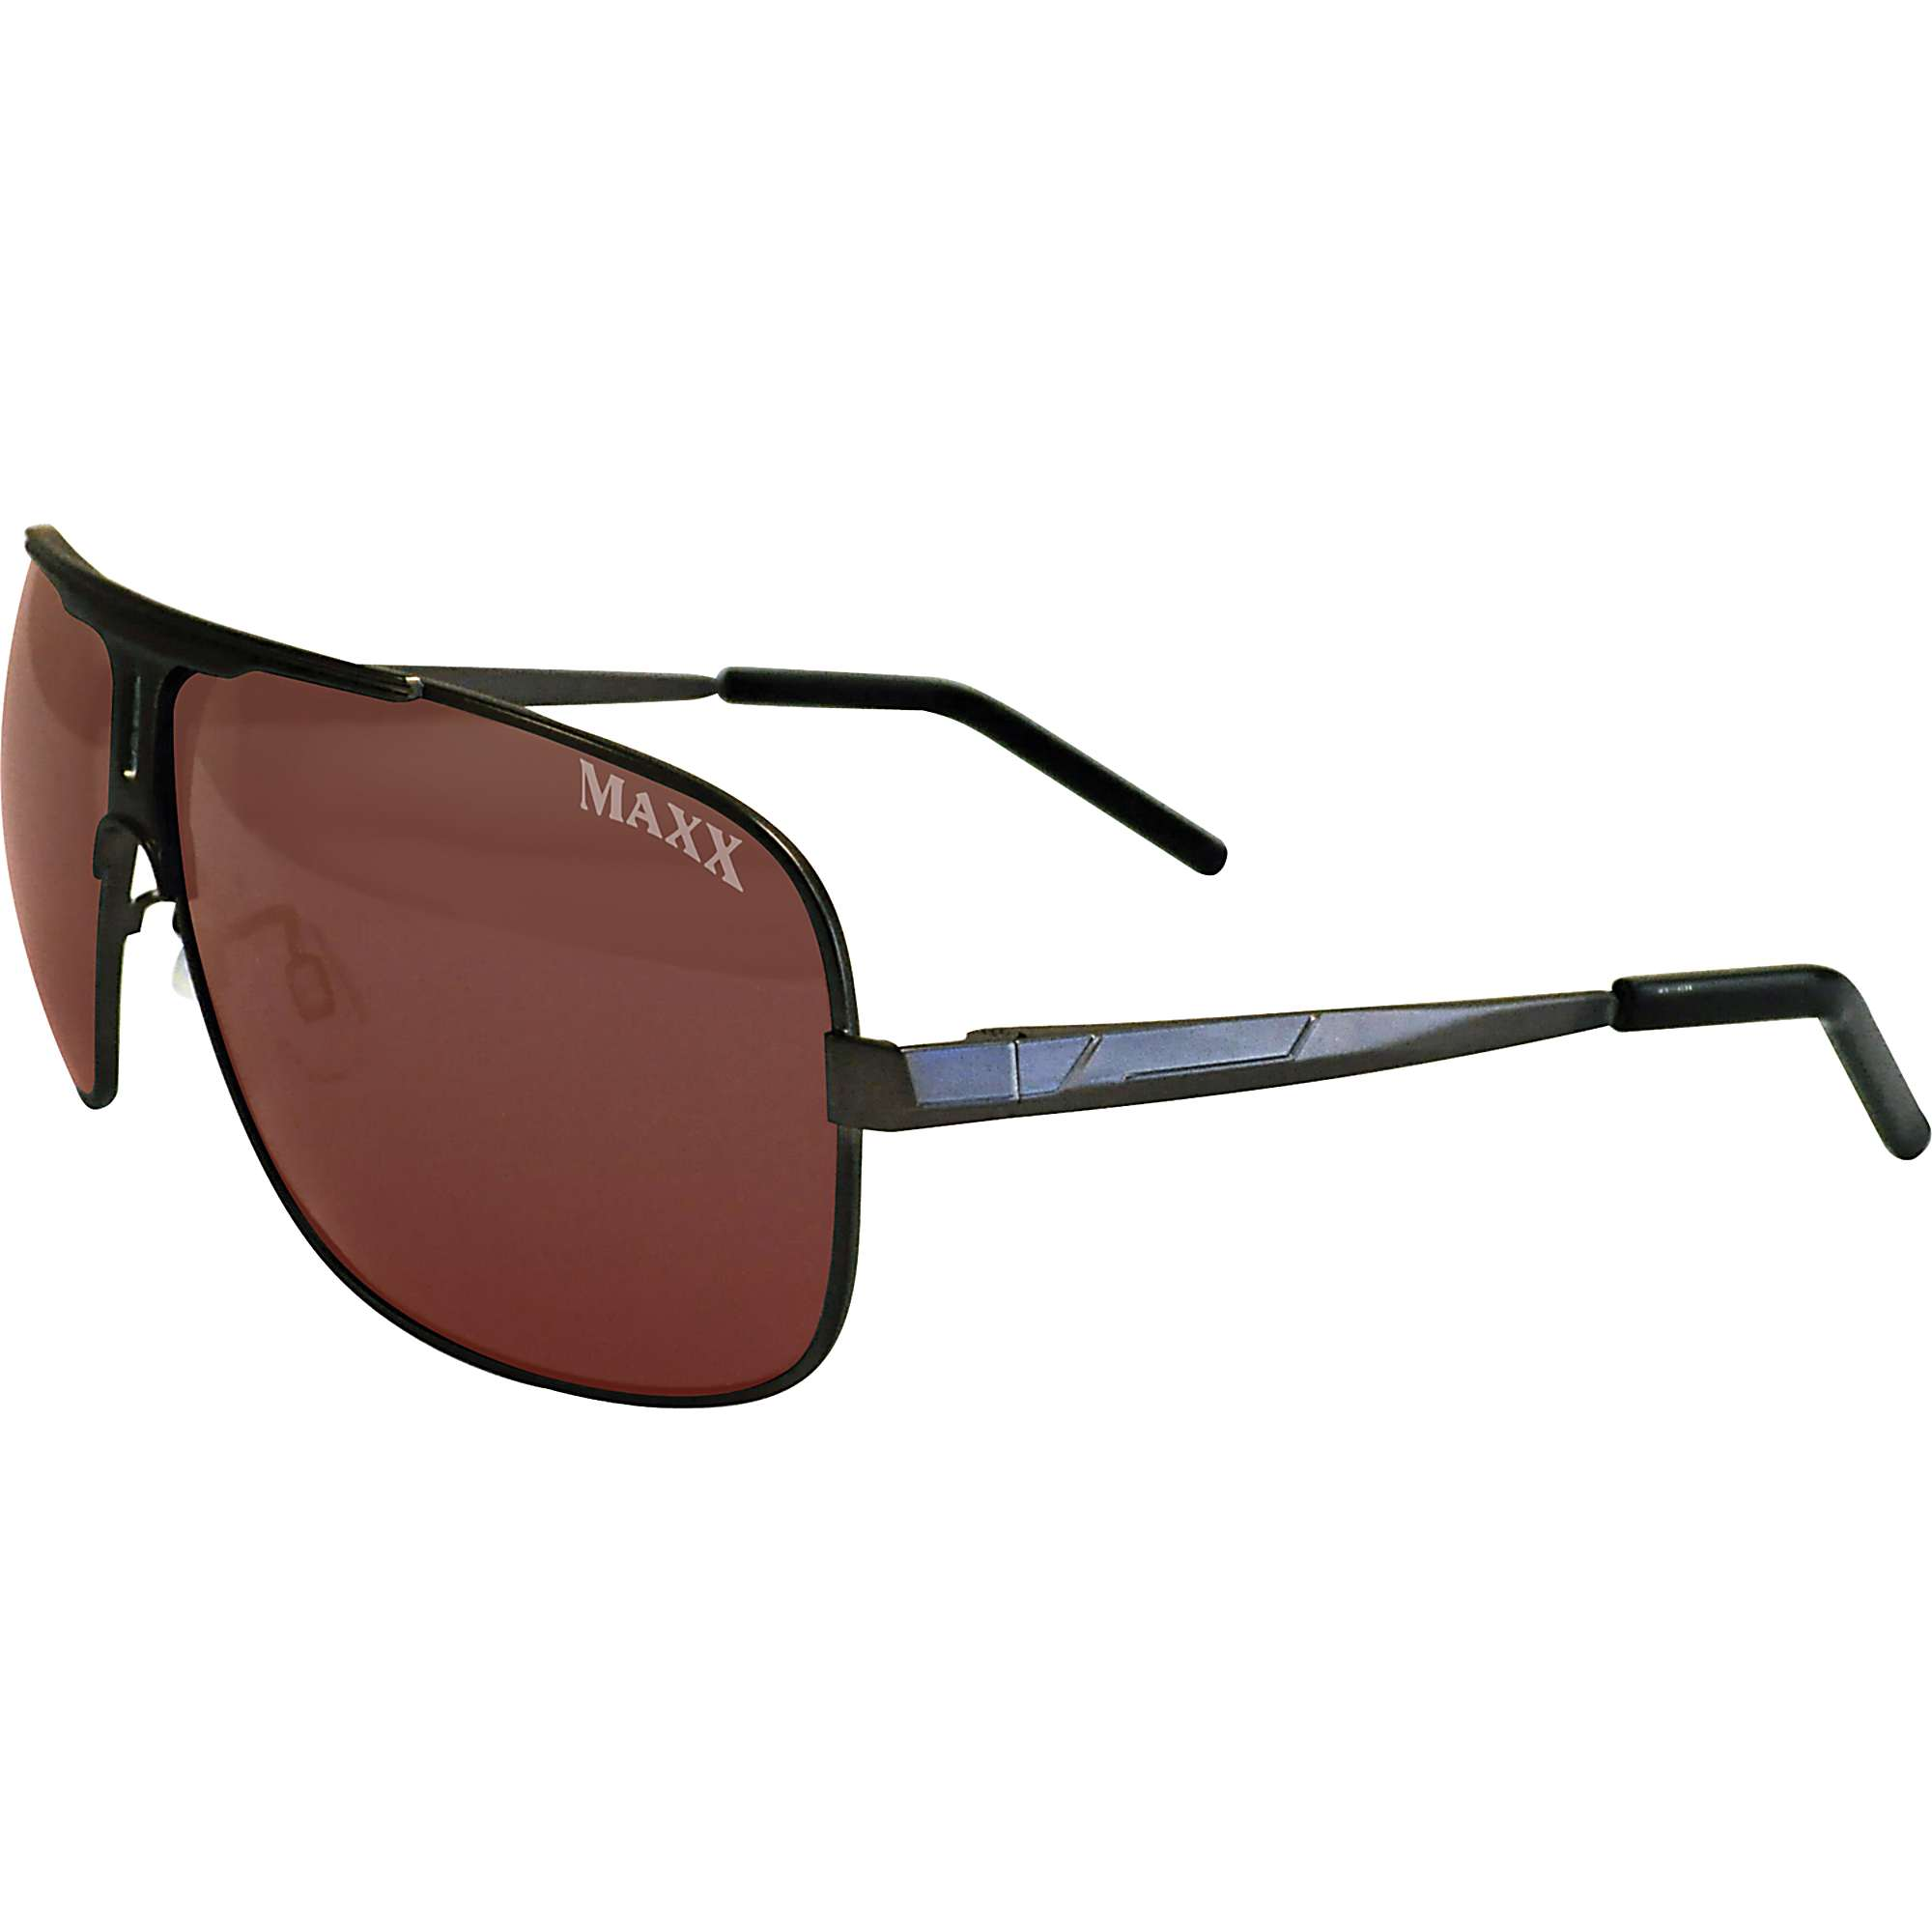 Maxx Hd Women's Bomber Sunglasses